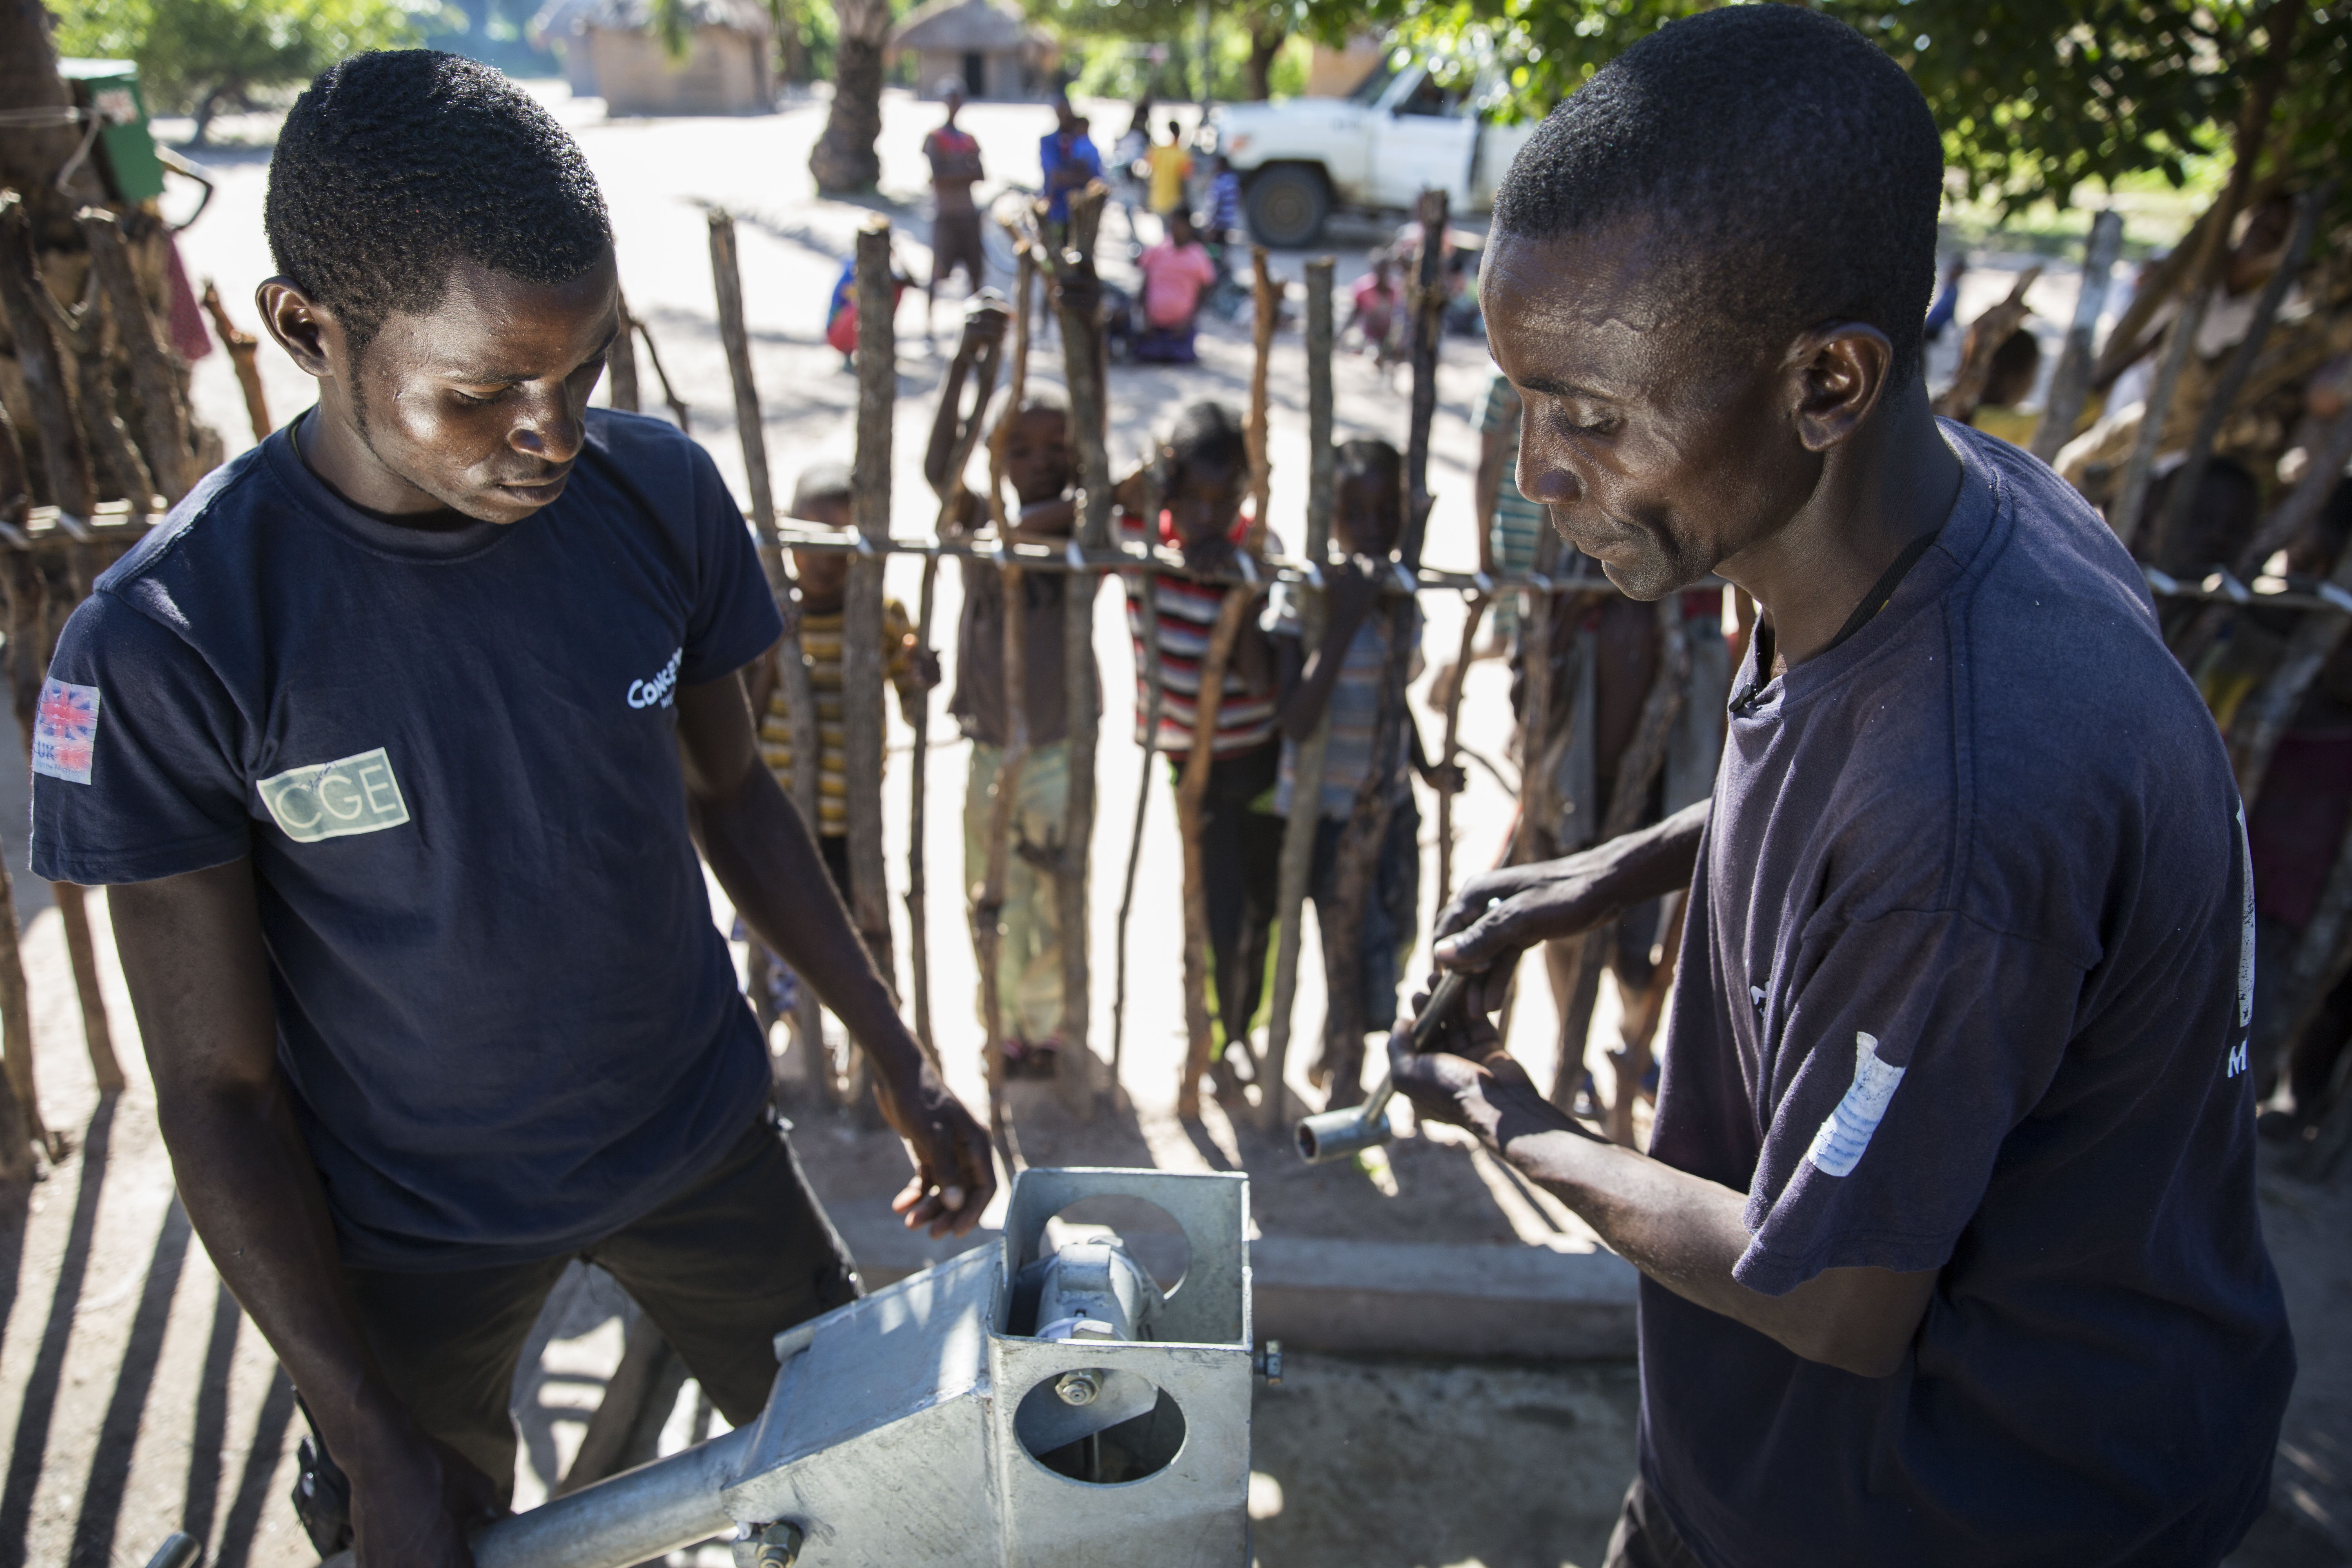 A maintenance team works on the water pump